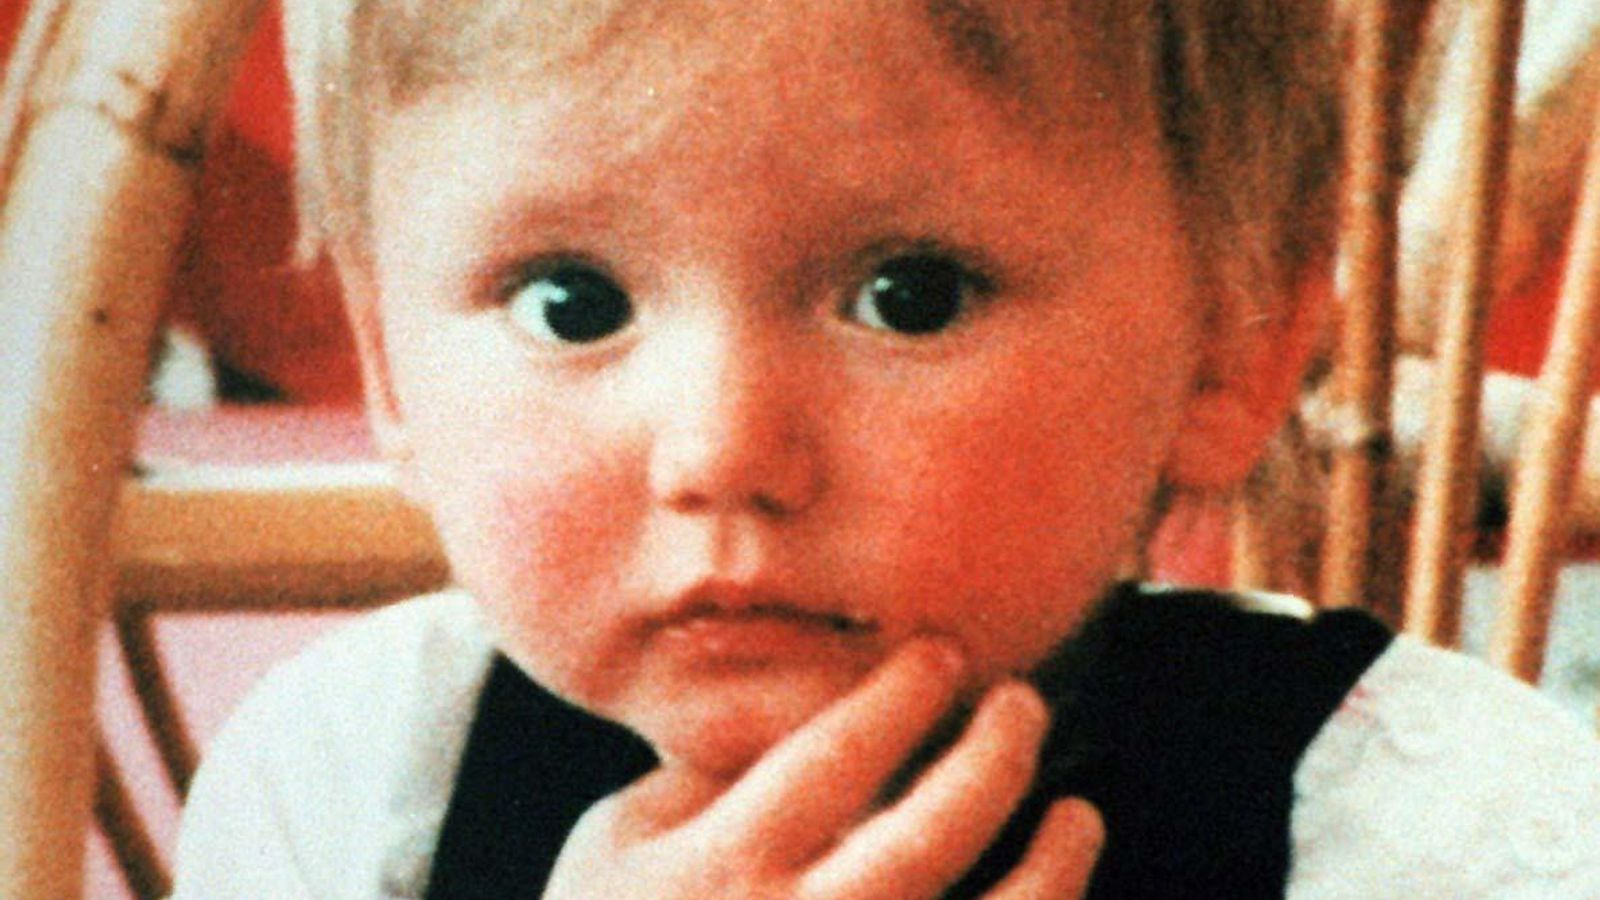 Ben Needham: Mother vows to continue search for son 30 years after his disappearance